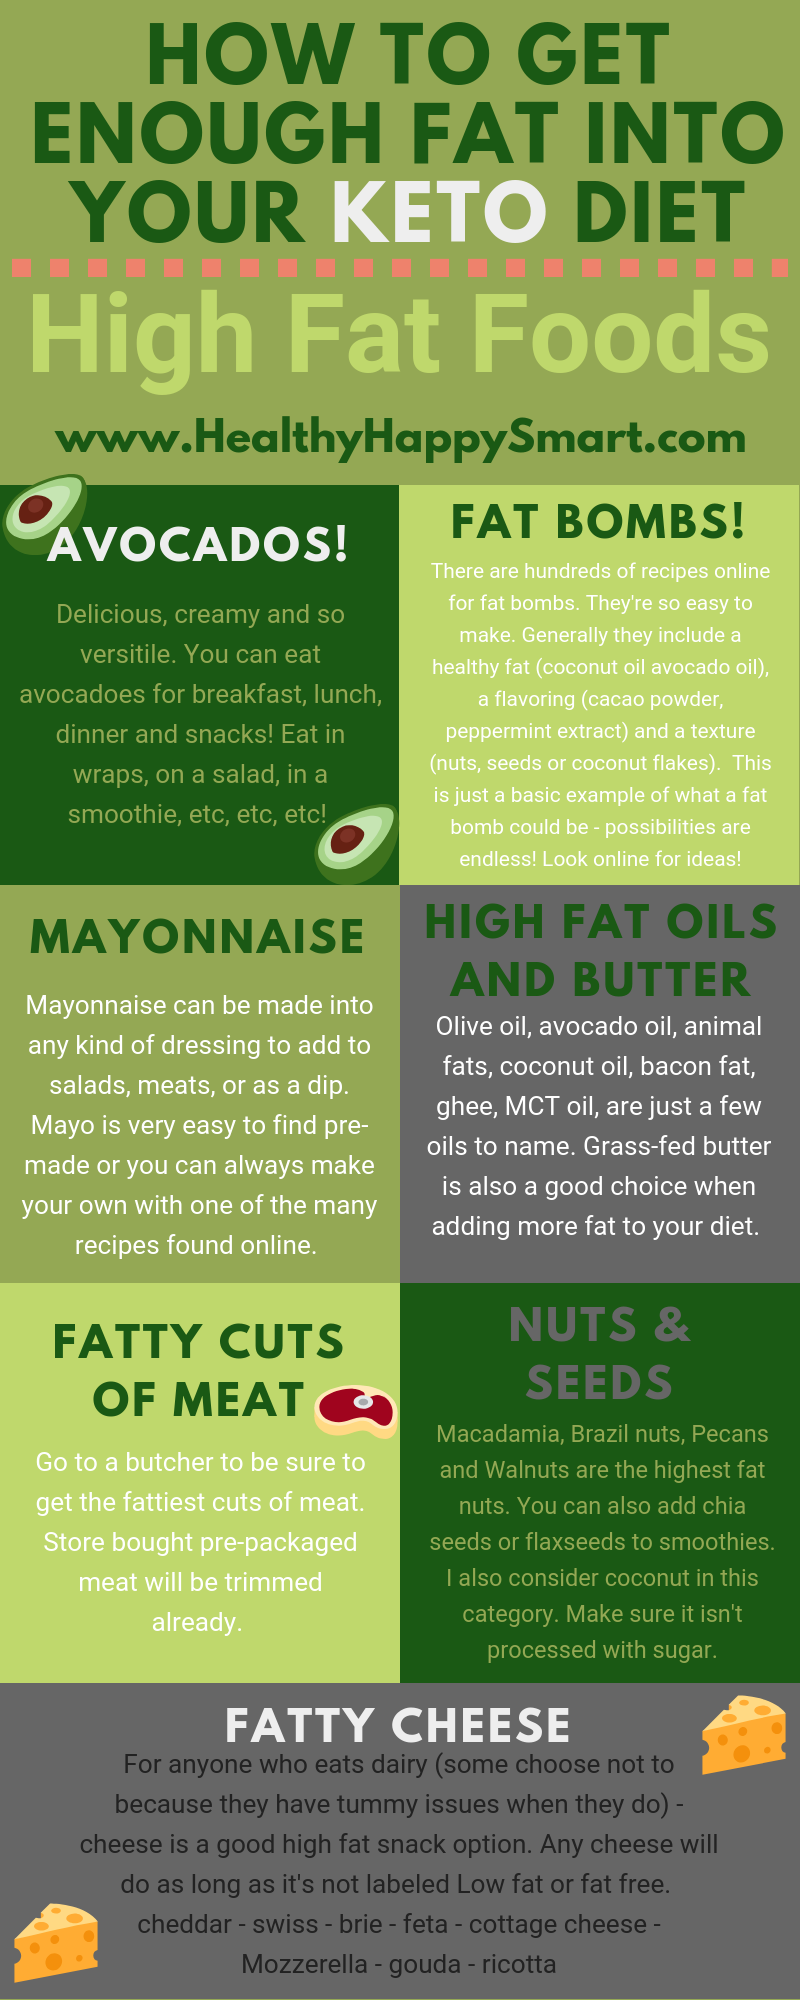 High Fat Foods - Get More Fat into Your Keto Diet images